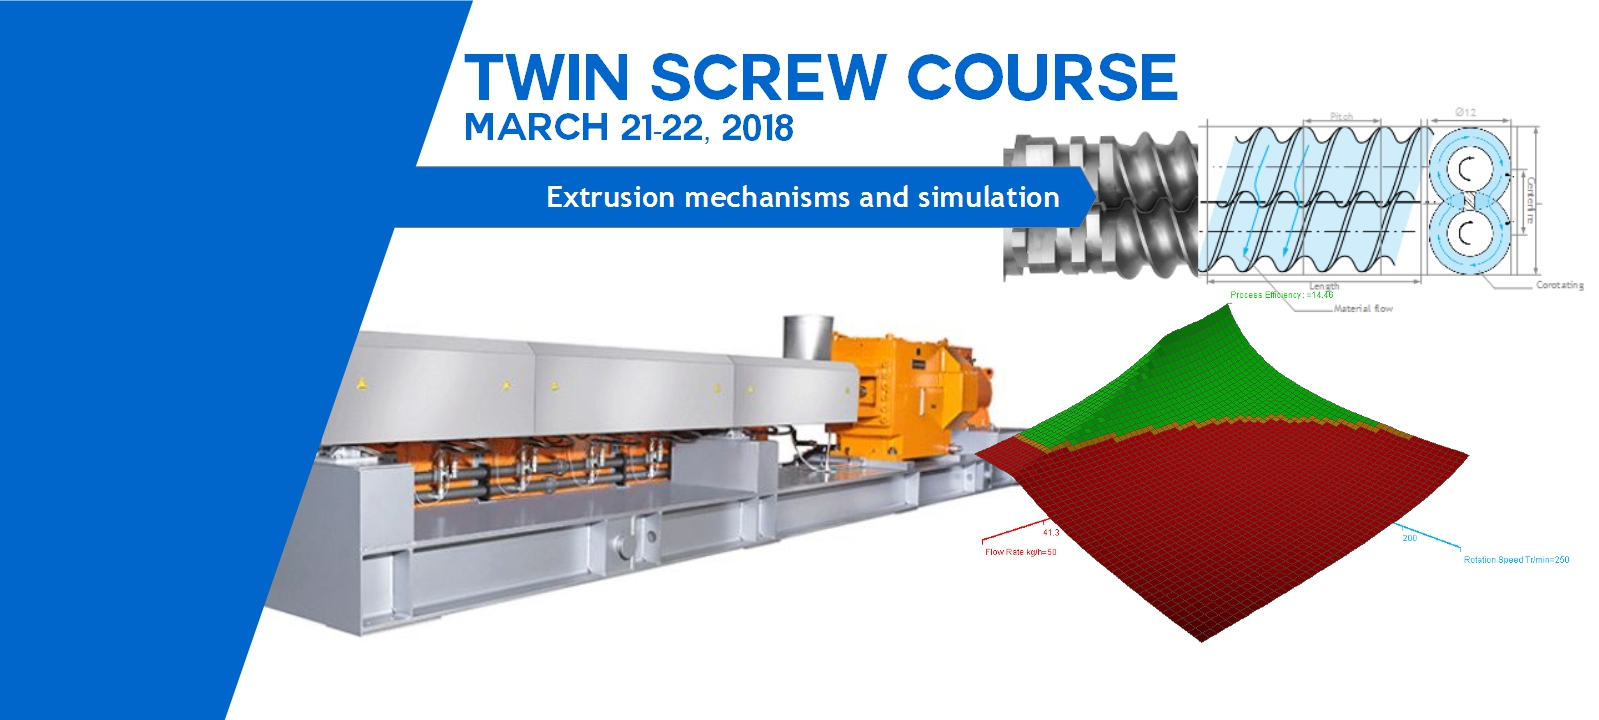 Twin Screw Course